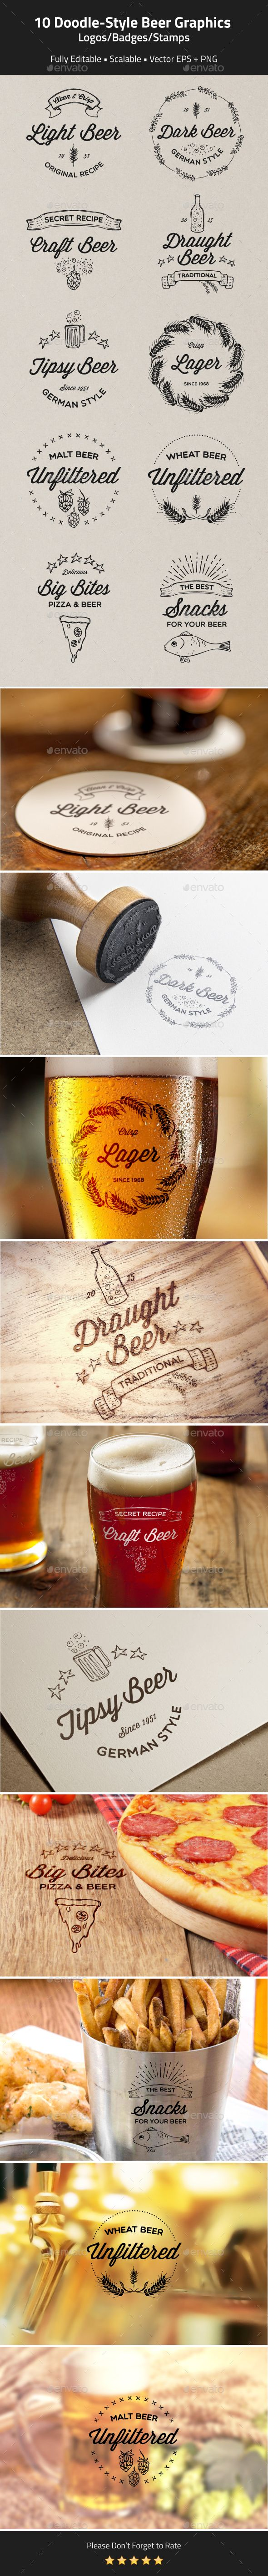 10 Doodle-Style Beer logos, badges, stamps FEATURESScalable vector EPS CS4 Scalable vector EPS CC Individual transparent PNG files